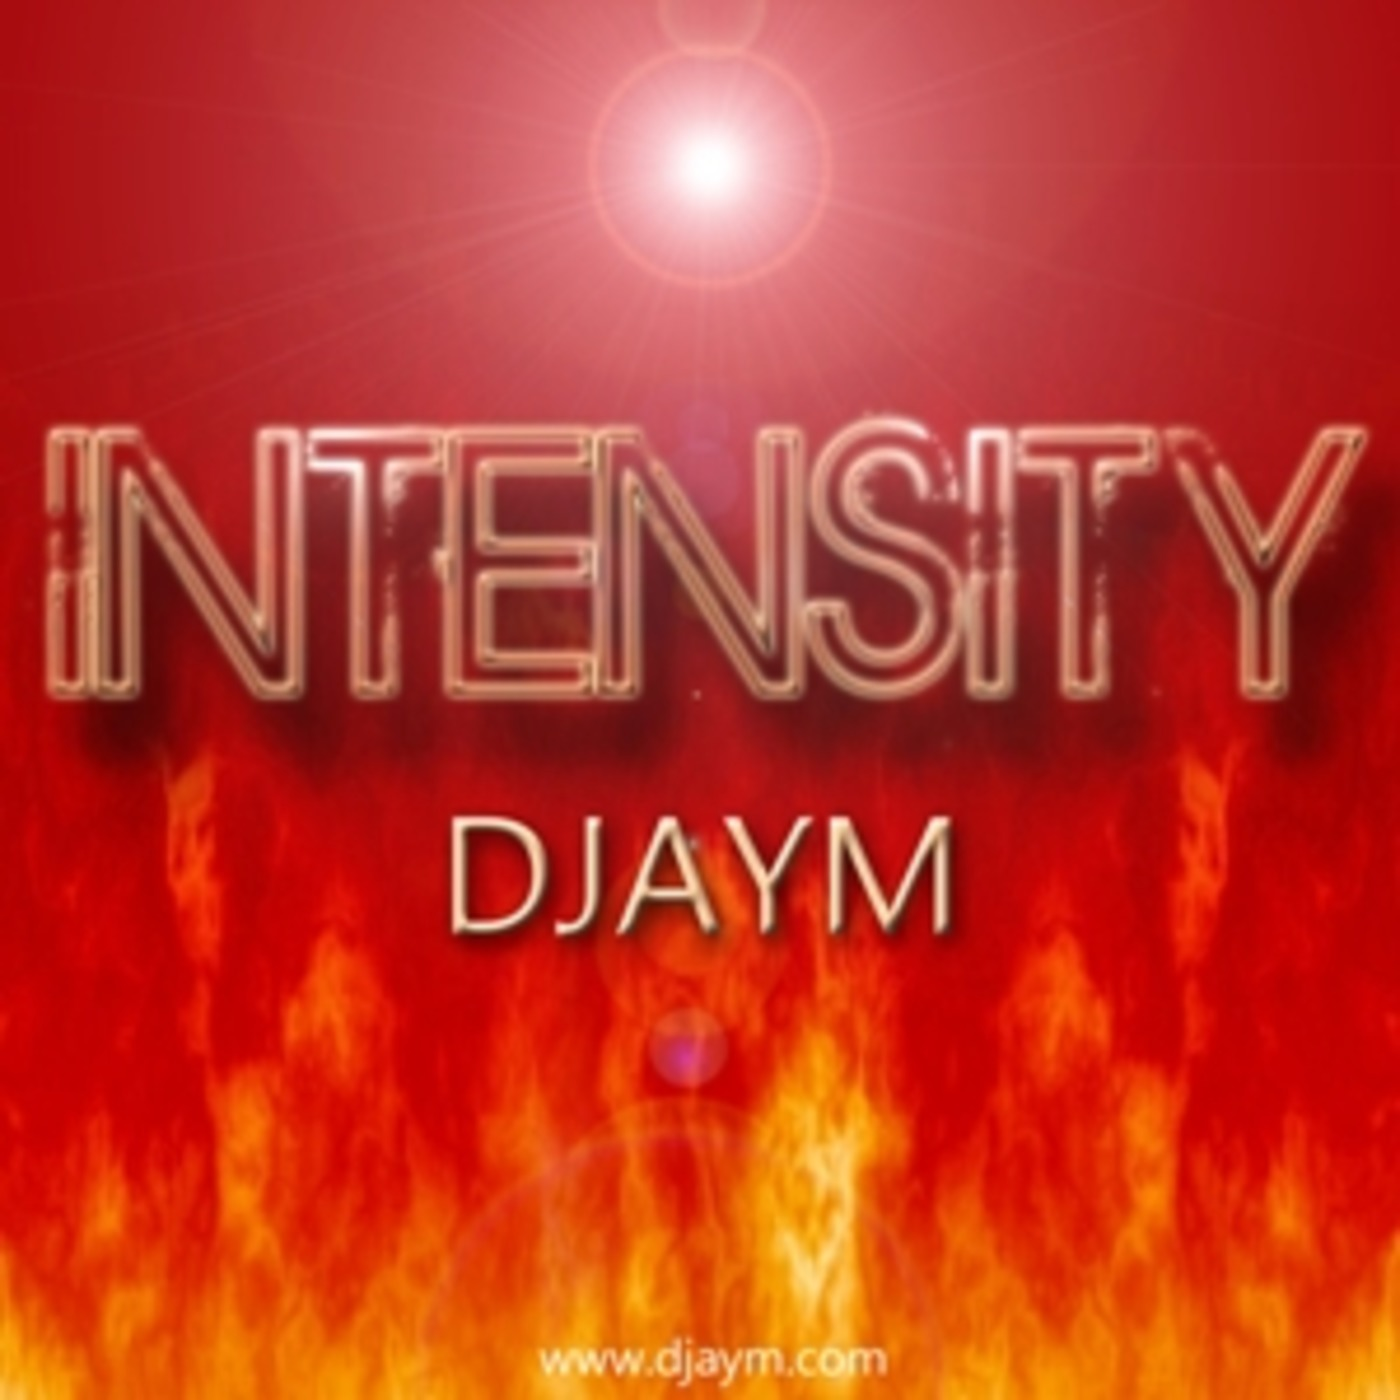 DJAYM - Intensity (Edit 130) DJAYM's podcast